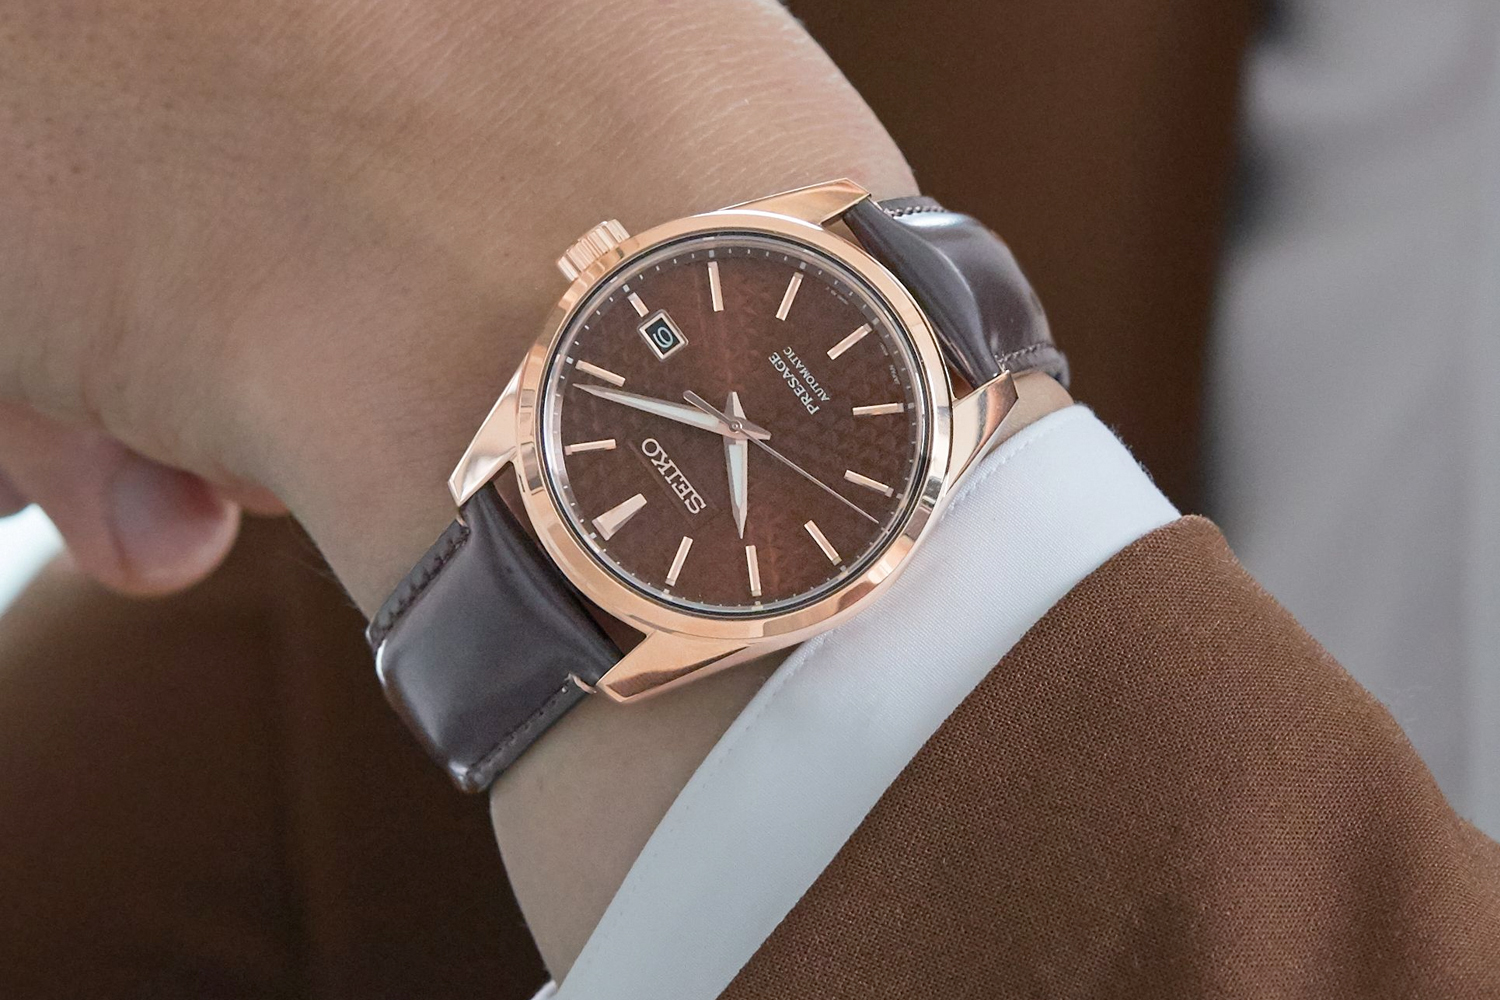 Seiko's Presage Watches are the Epitome of Japanese Craftsmanship and Design